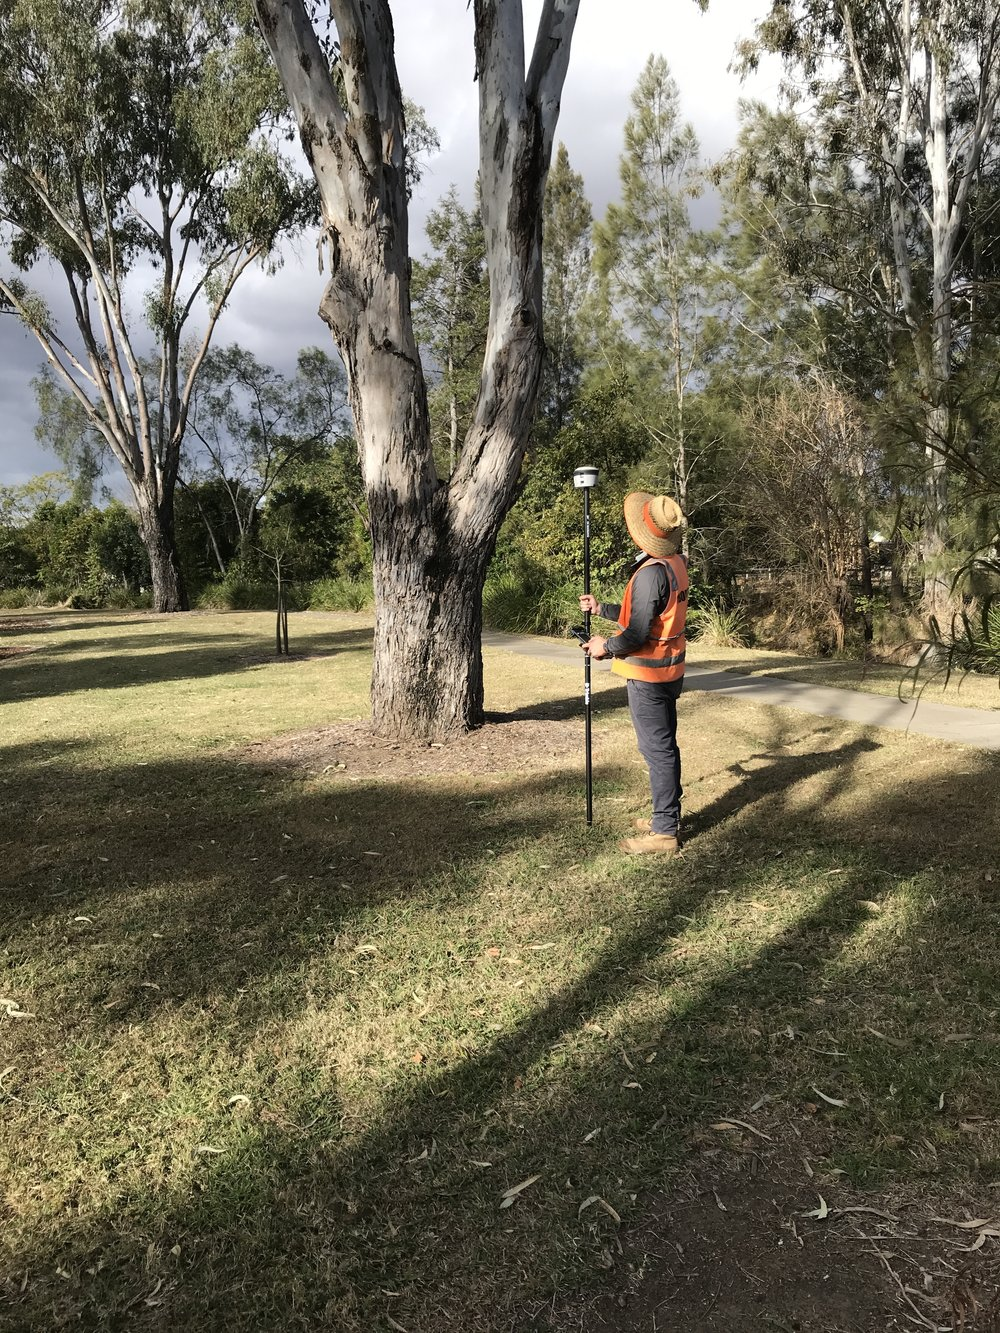 Roger Rankine capturing the coordinates of a tree using a Trimble R2 GNSS receiver for plotting into an Independent Arboricultural Services Tree Mapping Report.